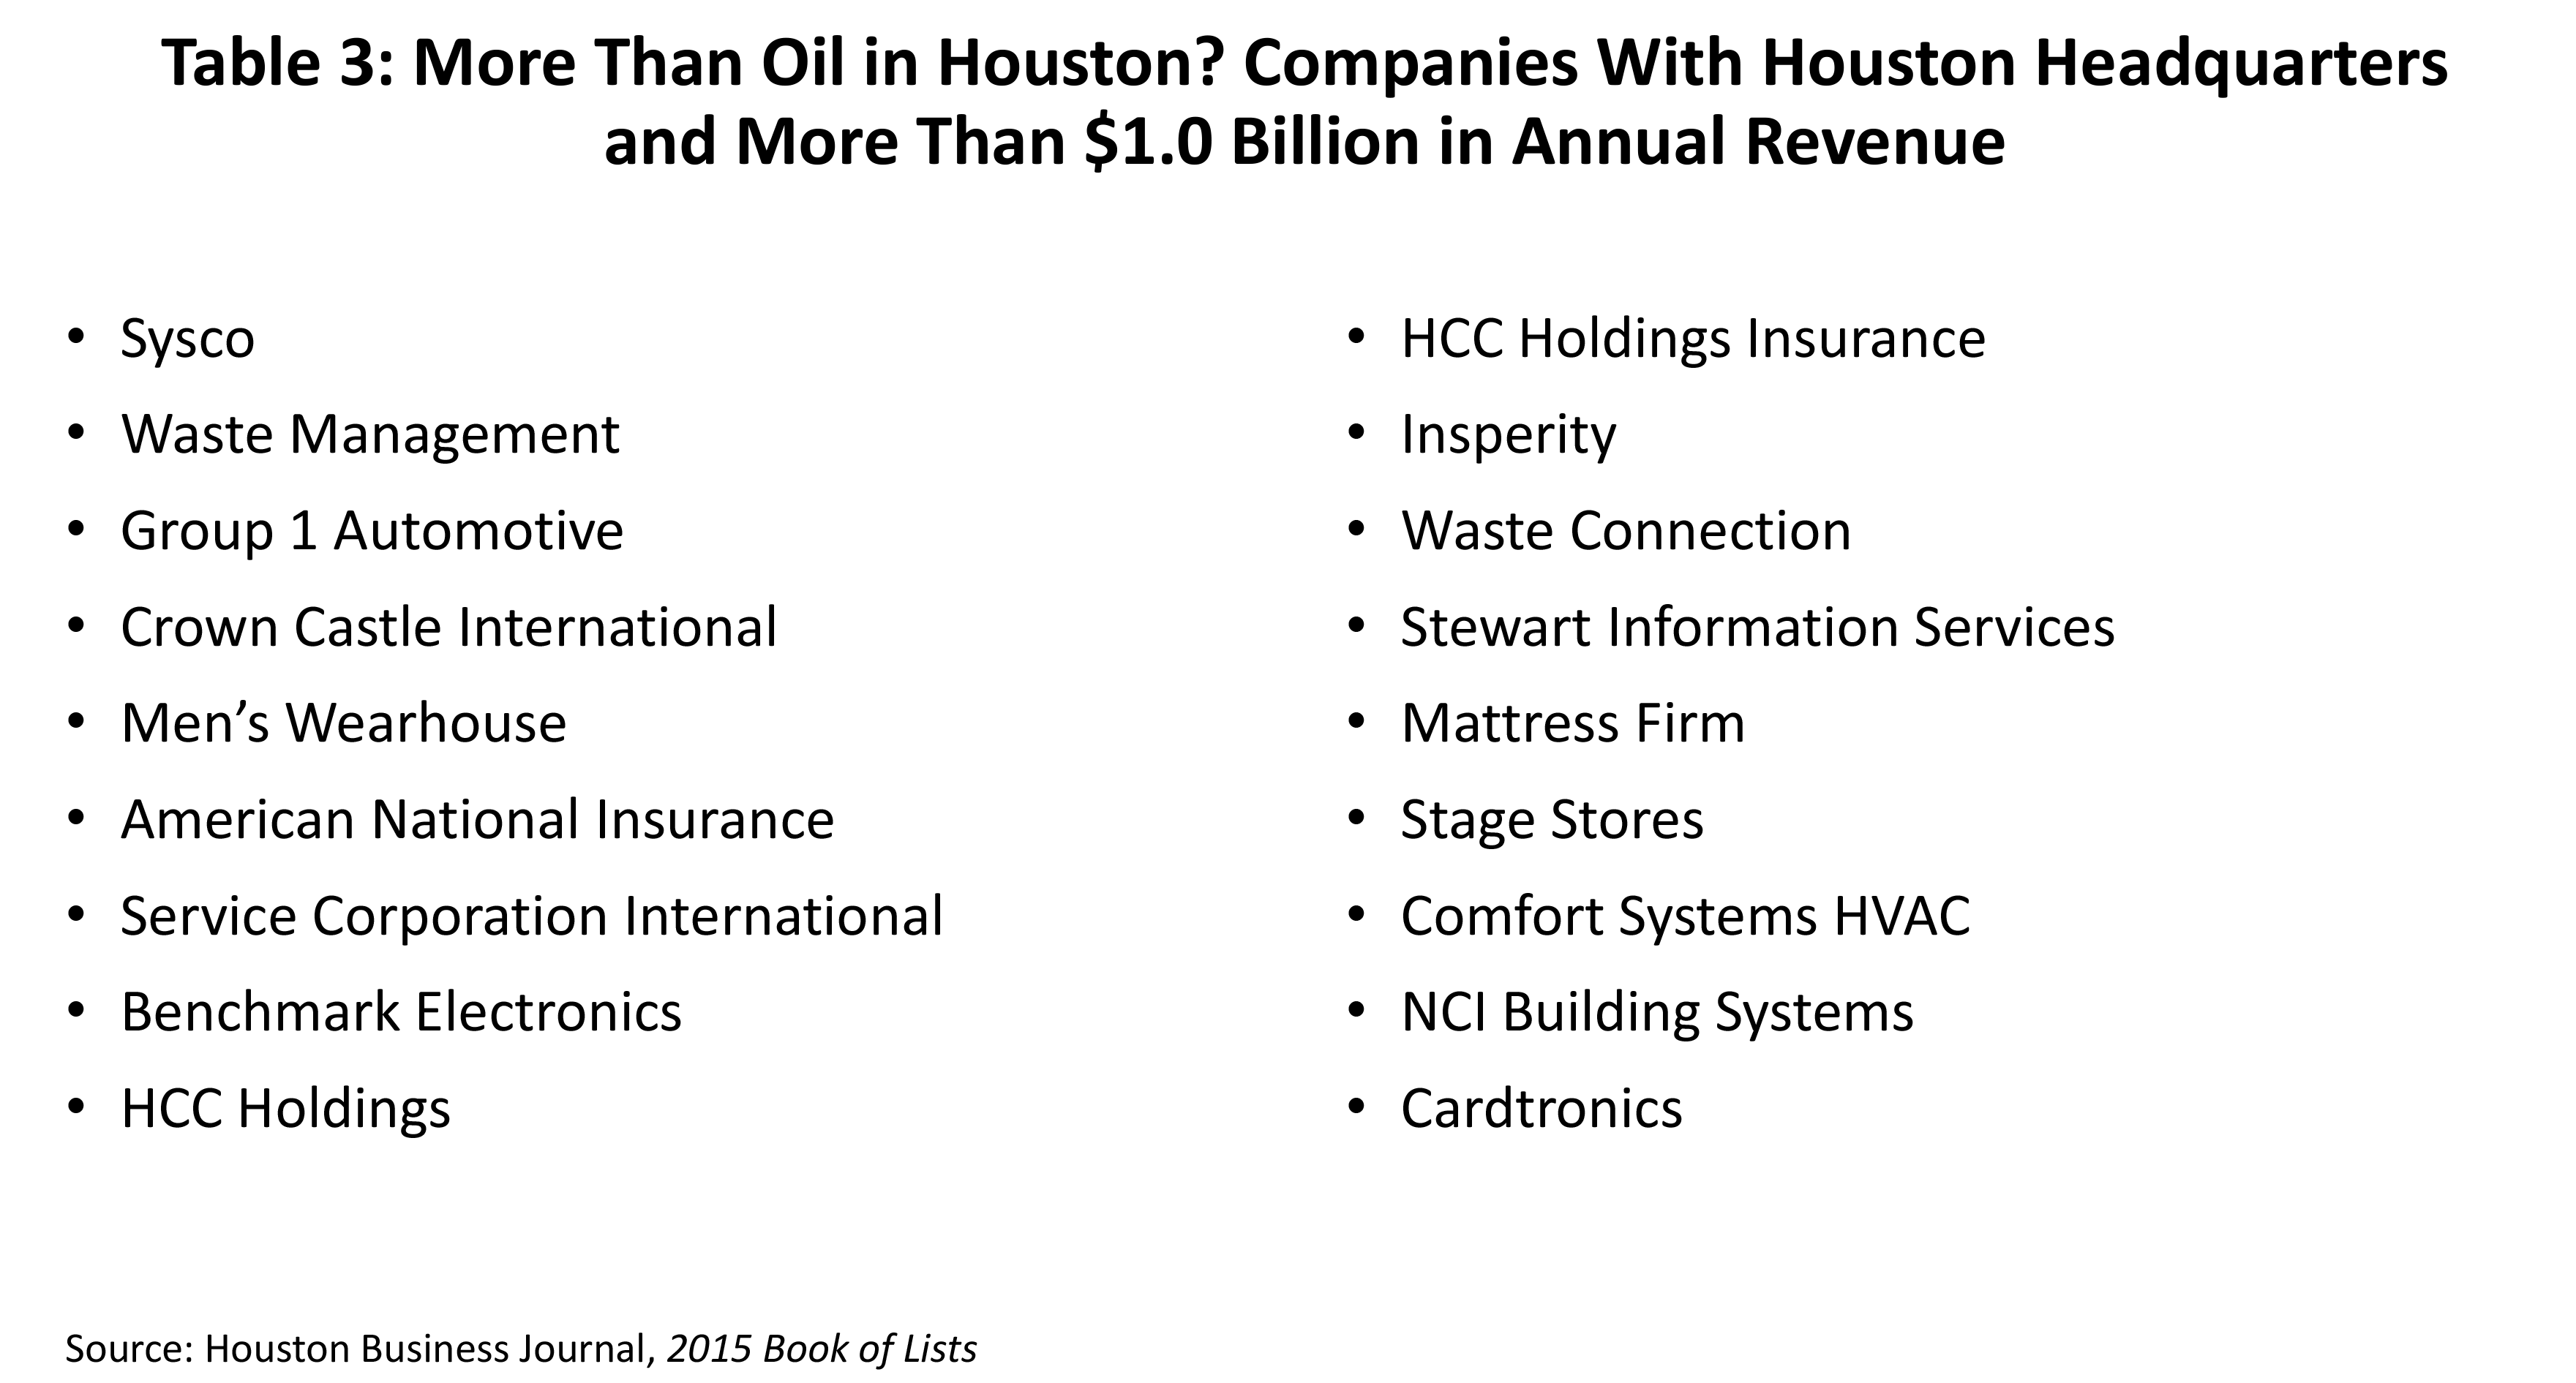 Table 3. More Than Oil in Houston? Companies With Houston Headquarters and More Than $1.0 Billion in Annual Revenue.